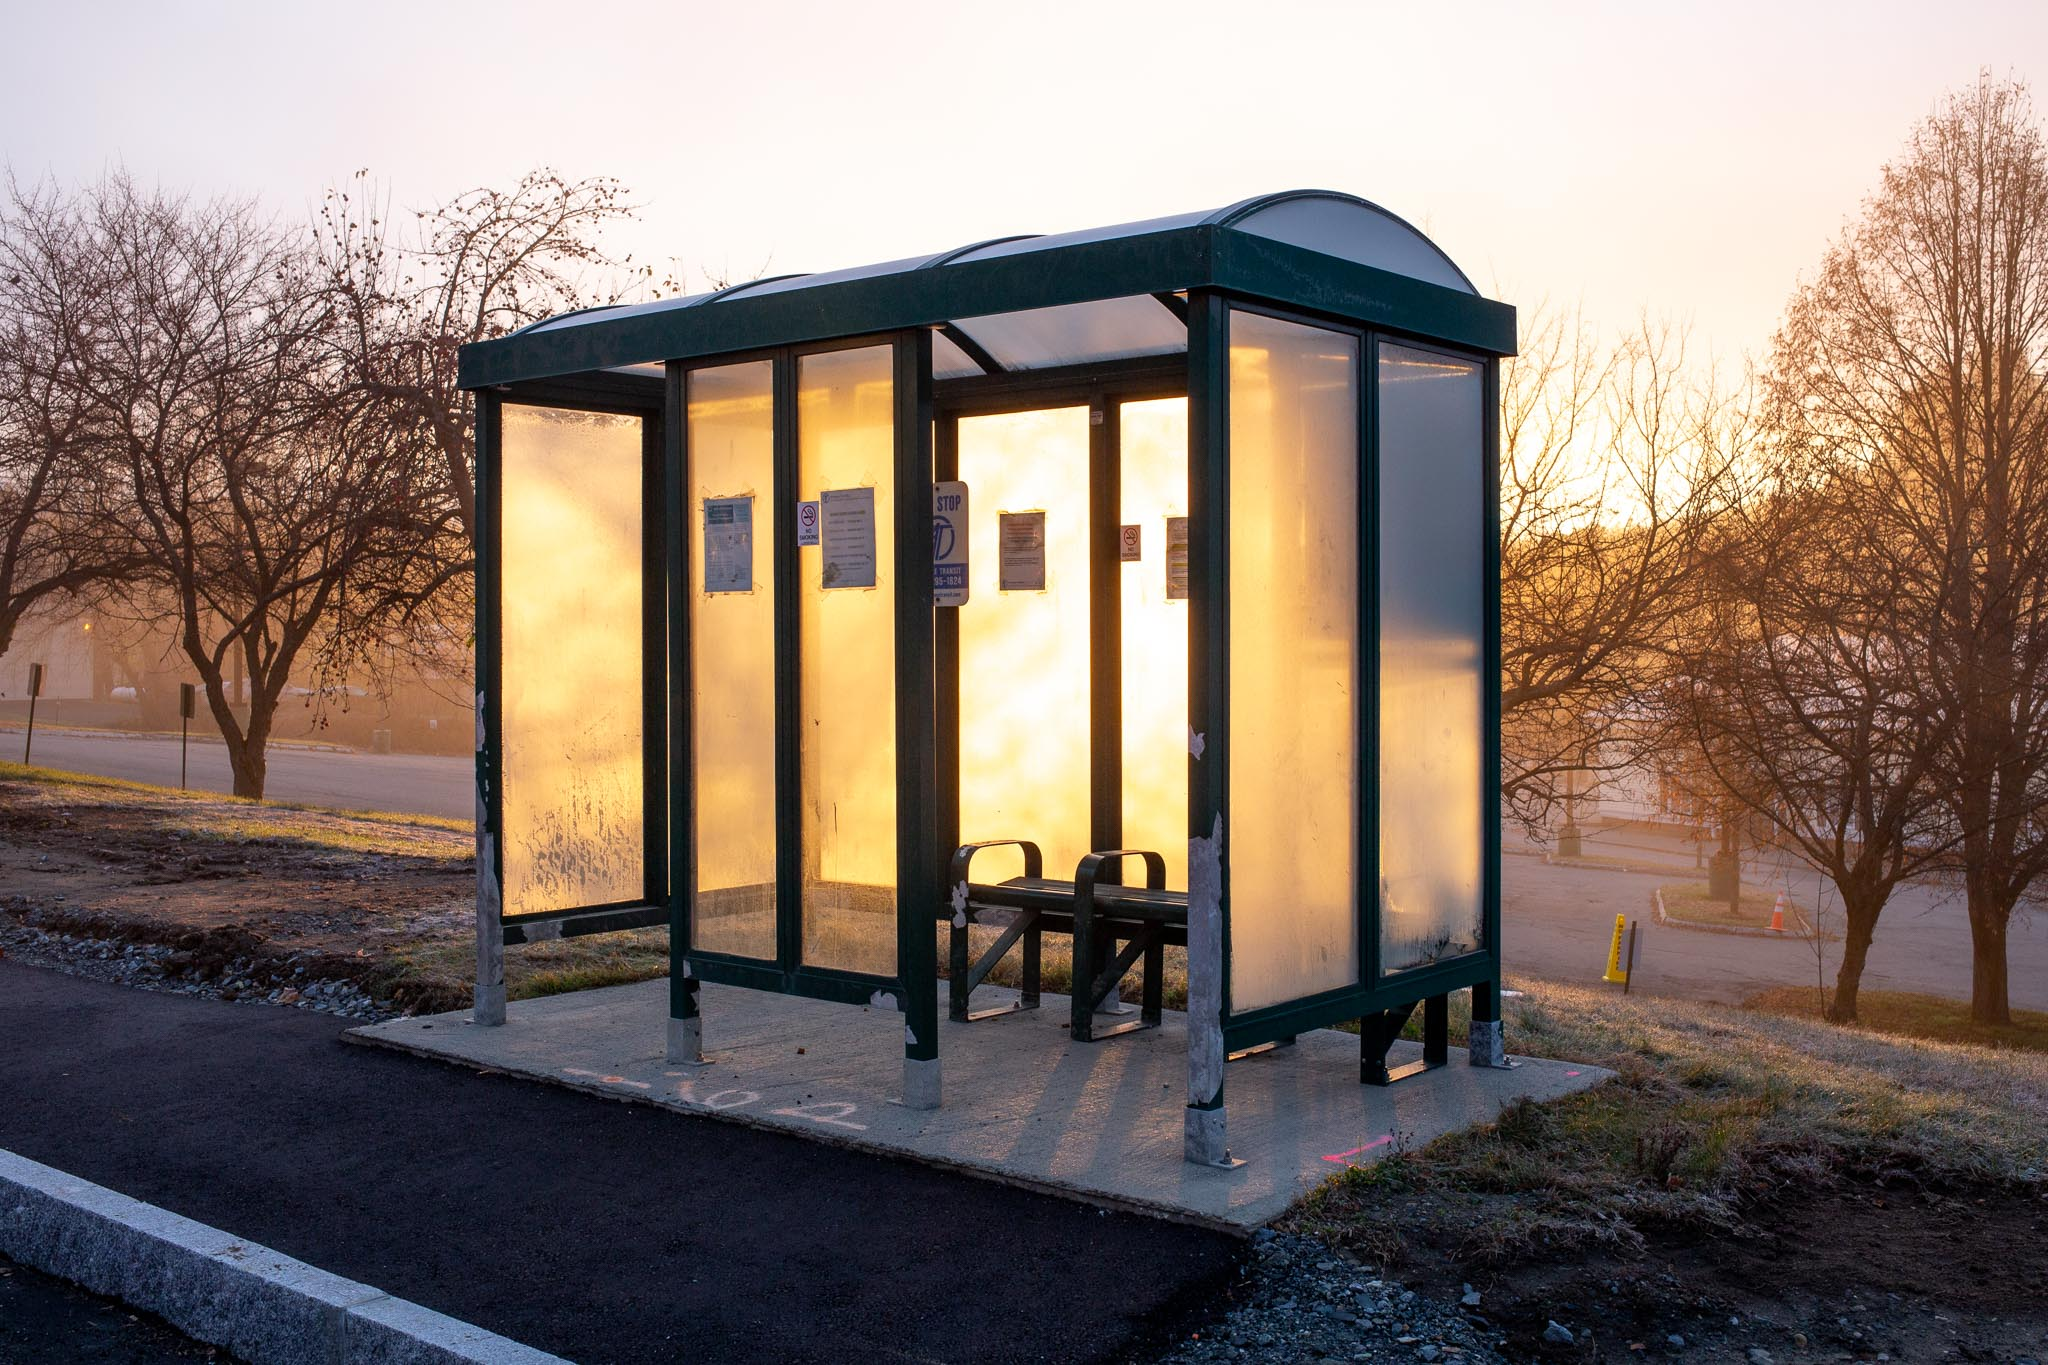 Sunrise Through Bus Stop Shelter